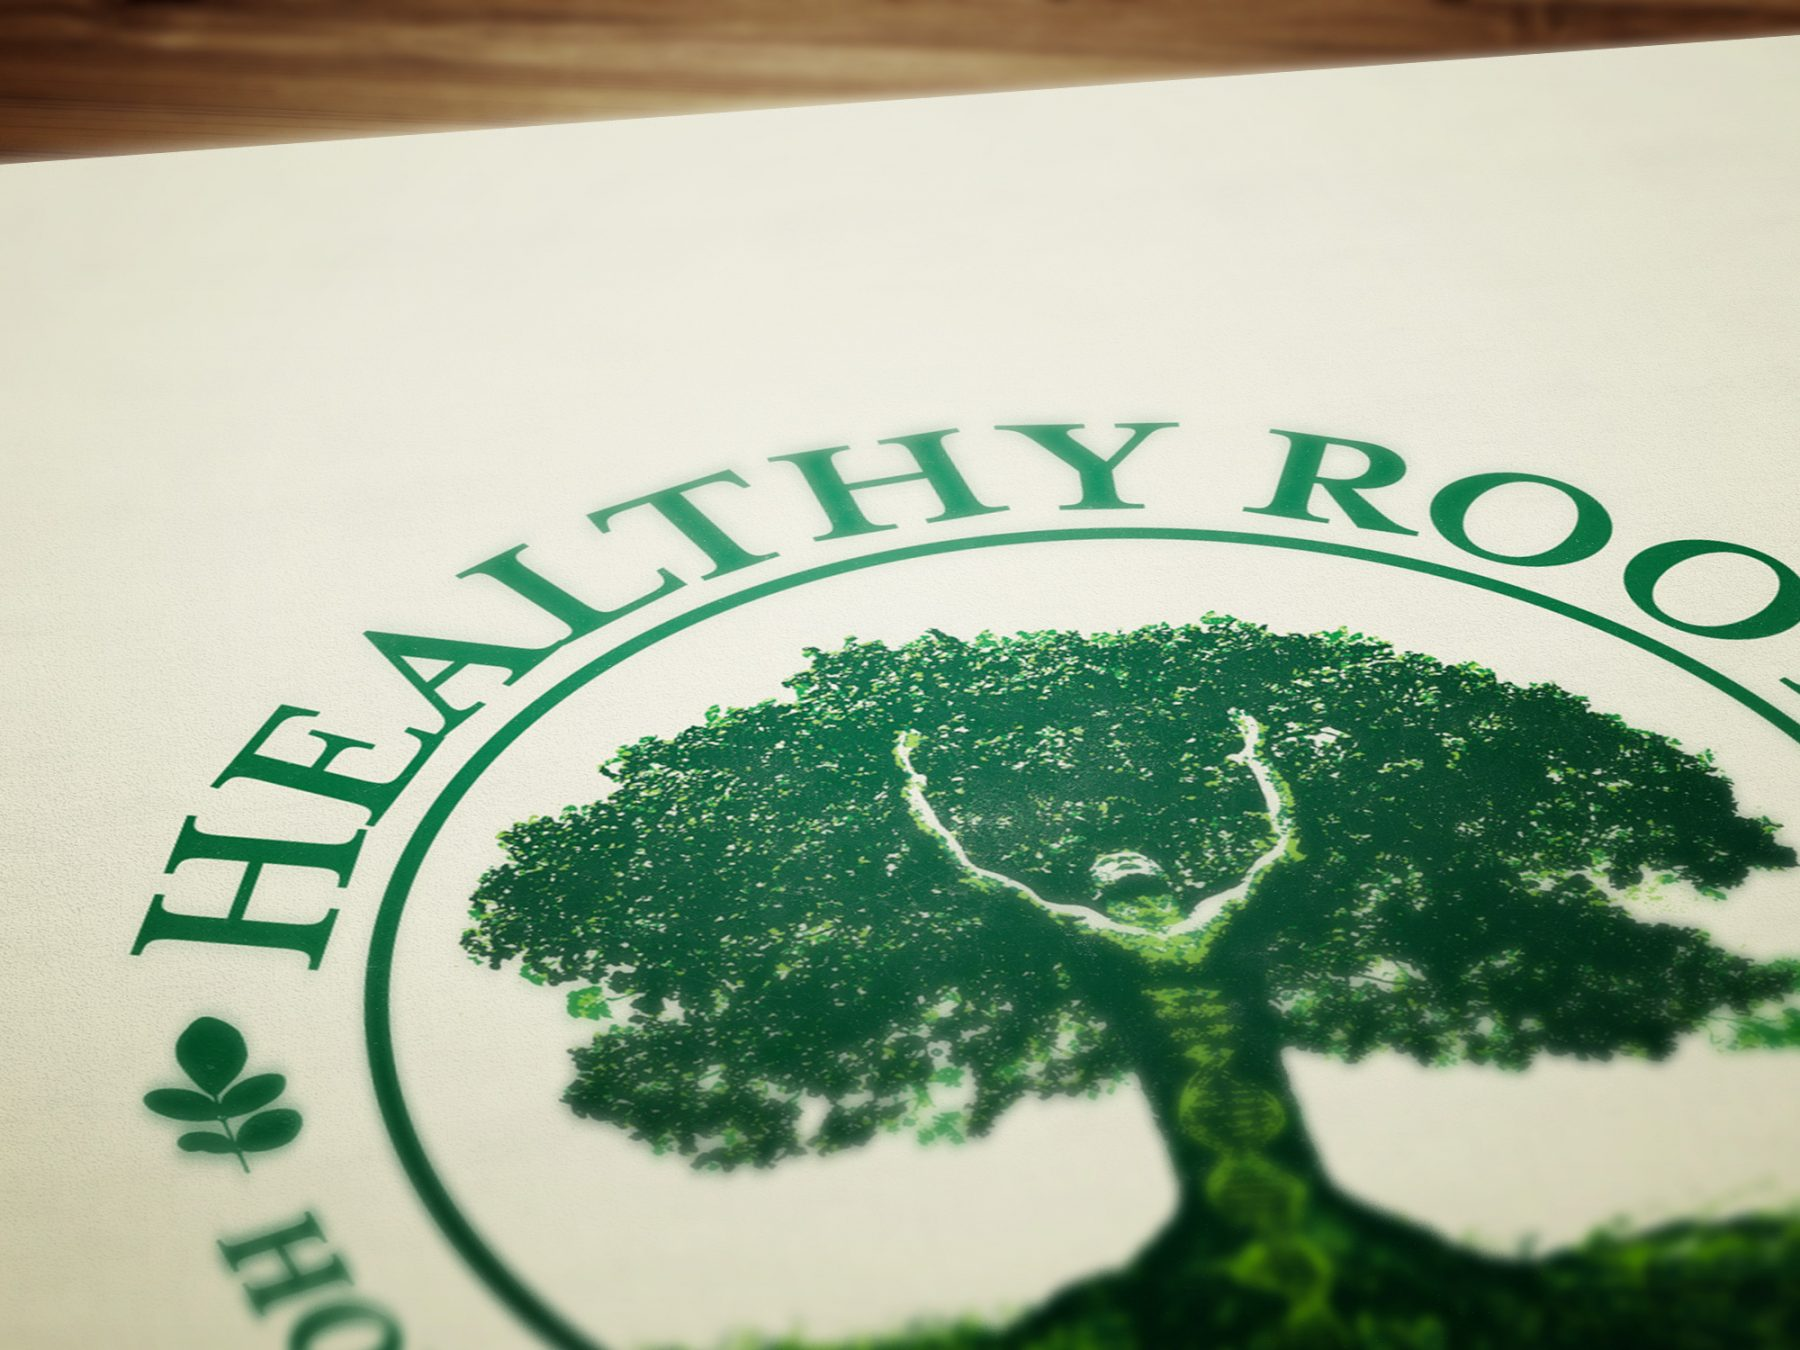 Healthy Roots Holistic Practitioners logo design and branding